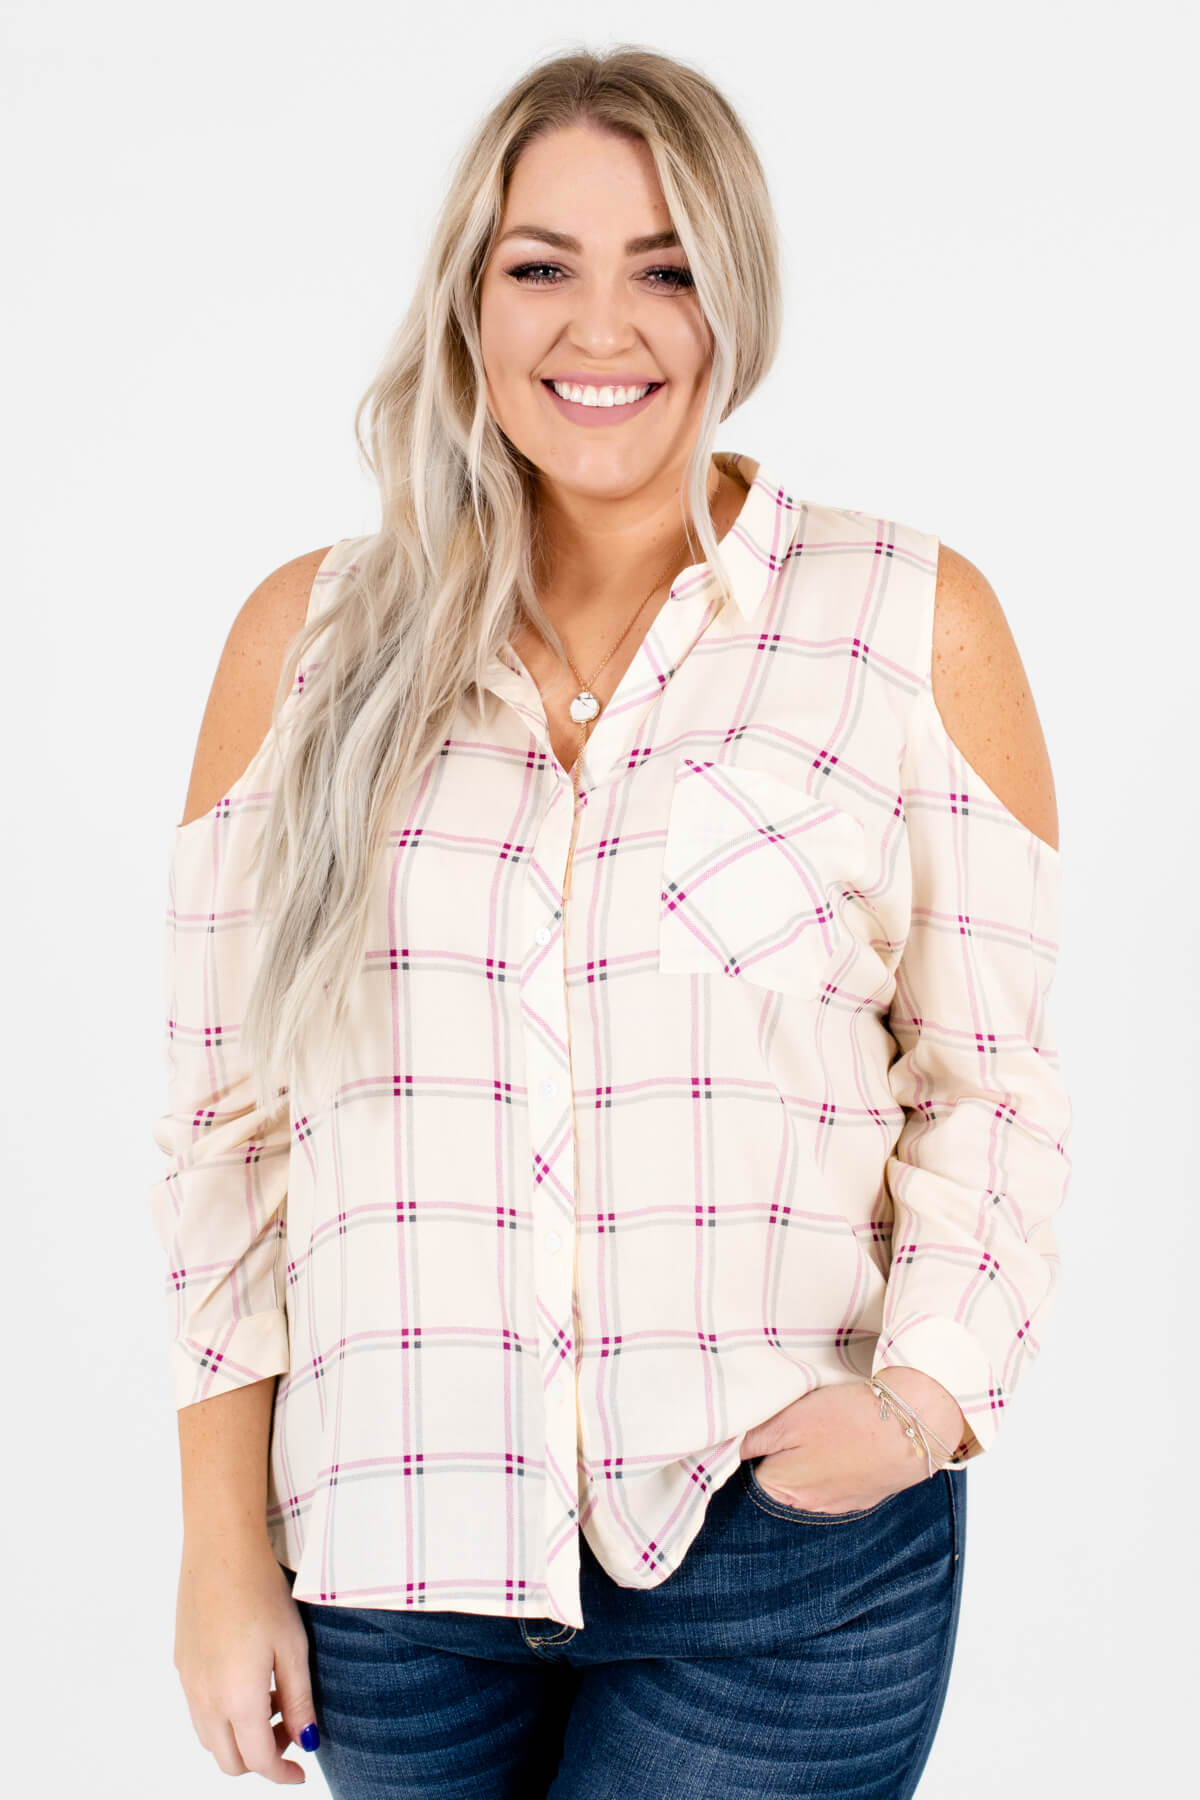 Cream Purple and Slate Plaid Patterned Plus Size Boutique Tops for Women